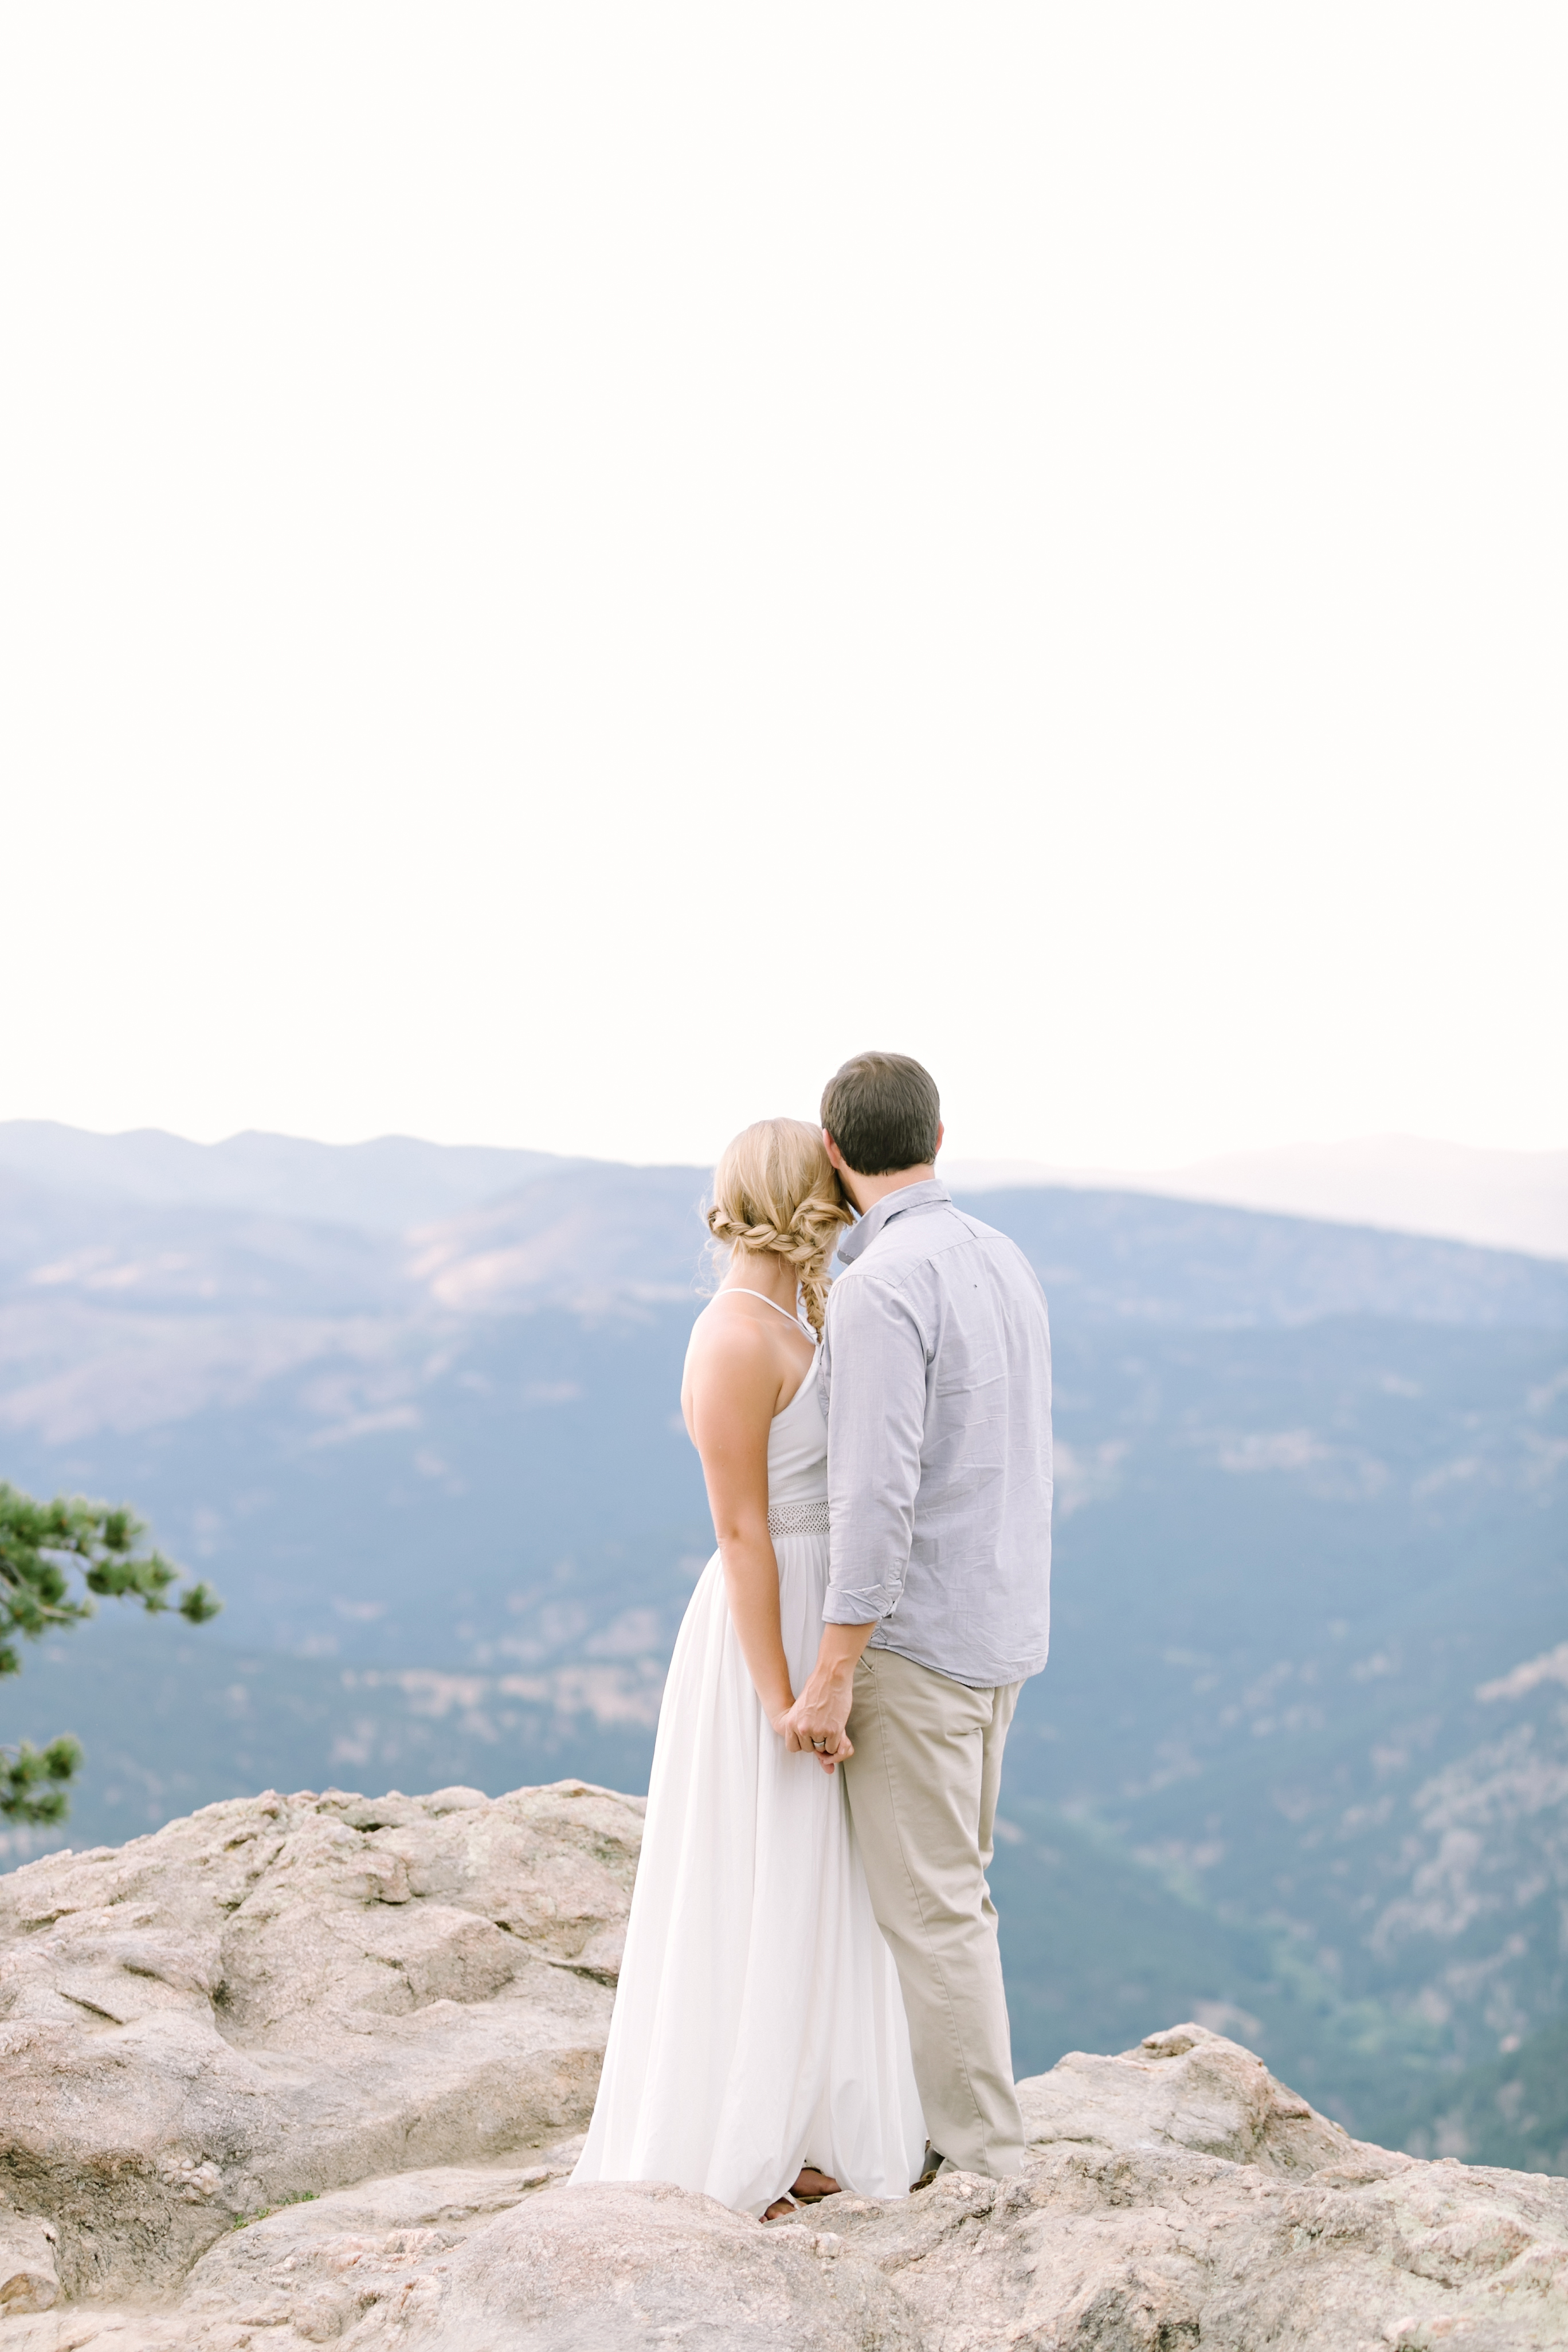 Meagan & Diego Portraits | Julie Wilhite Photography | Colorado Engagements | Mountain Portraits | Flat Irons | Chautauqua | Boulder Engagements | Outdoor Portraits | Mountain Engagements | via juliewilhite.com